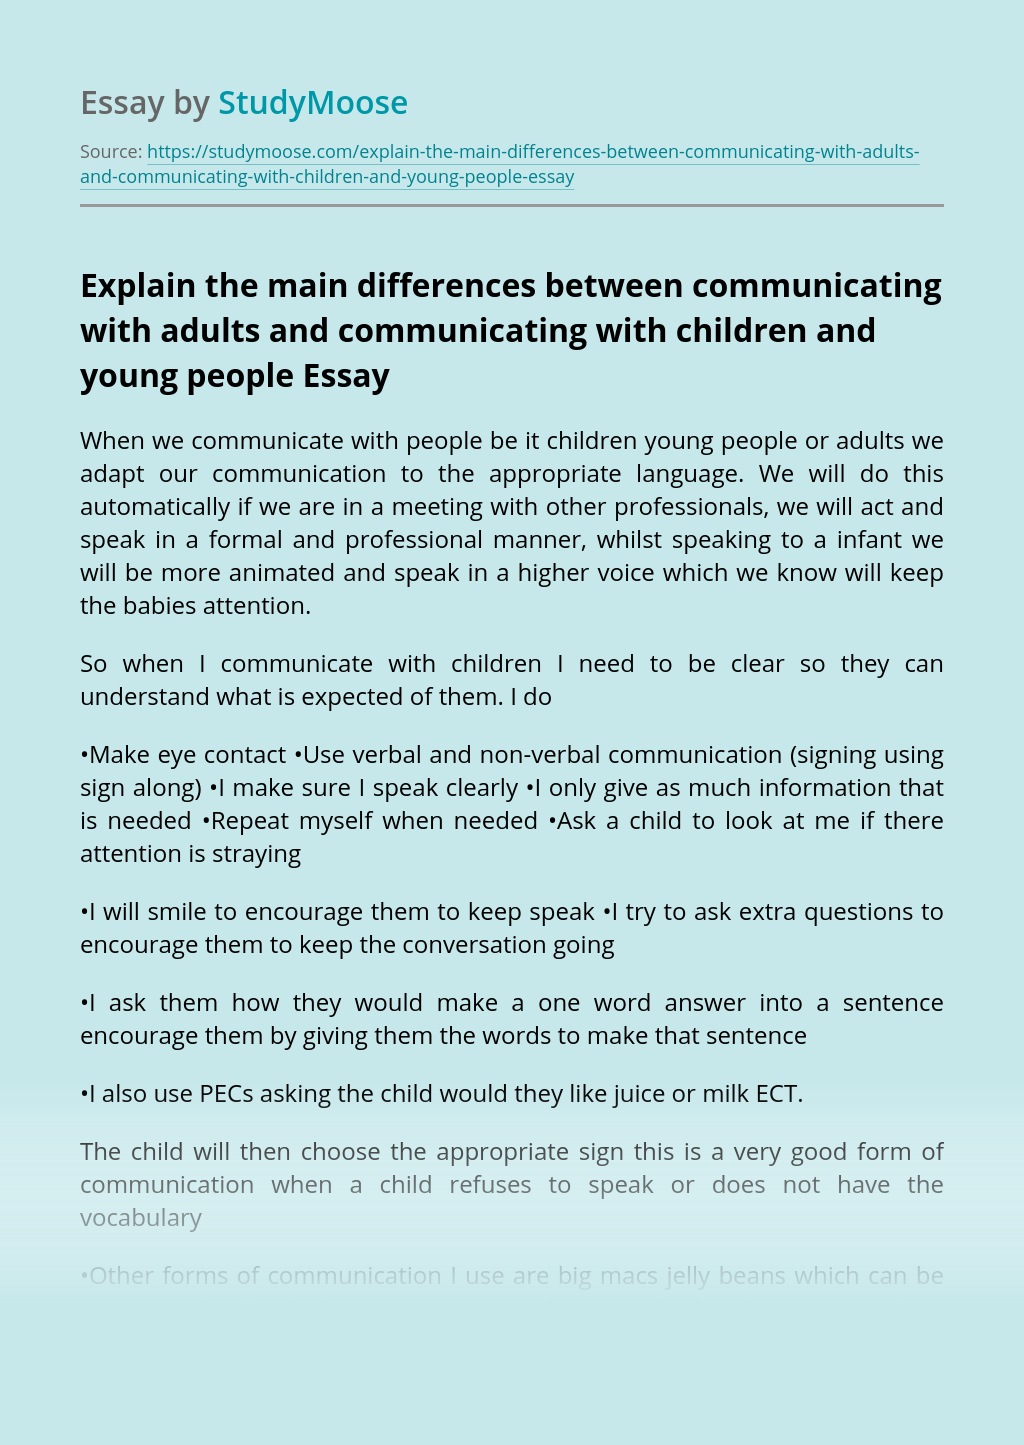 Explain the main differences between communicating with adults and communicating with children and young people